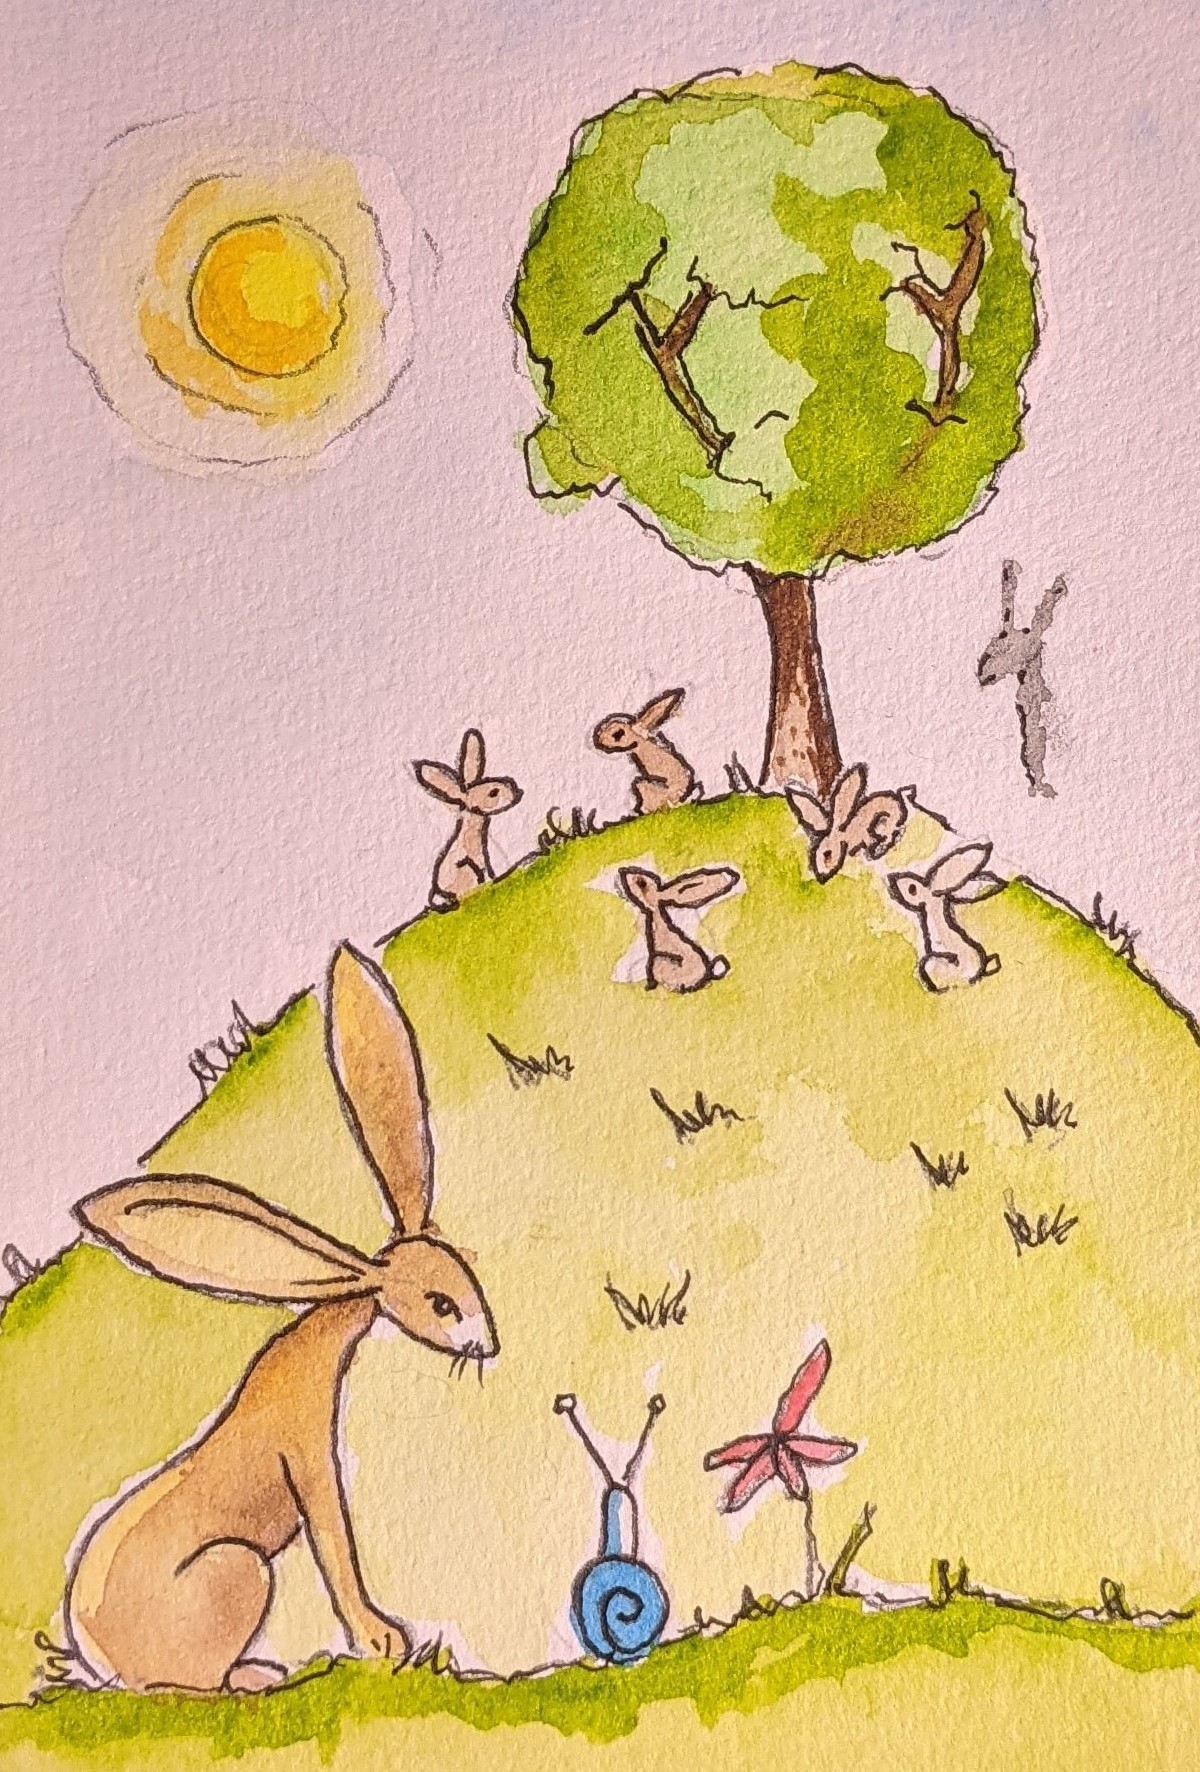 Day 6 Watership Down